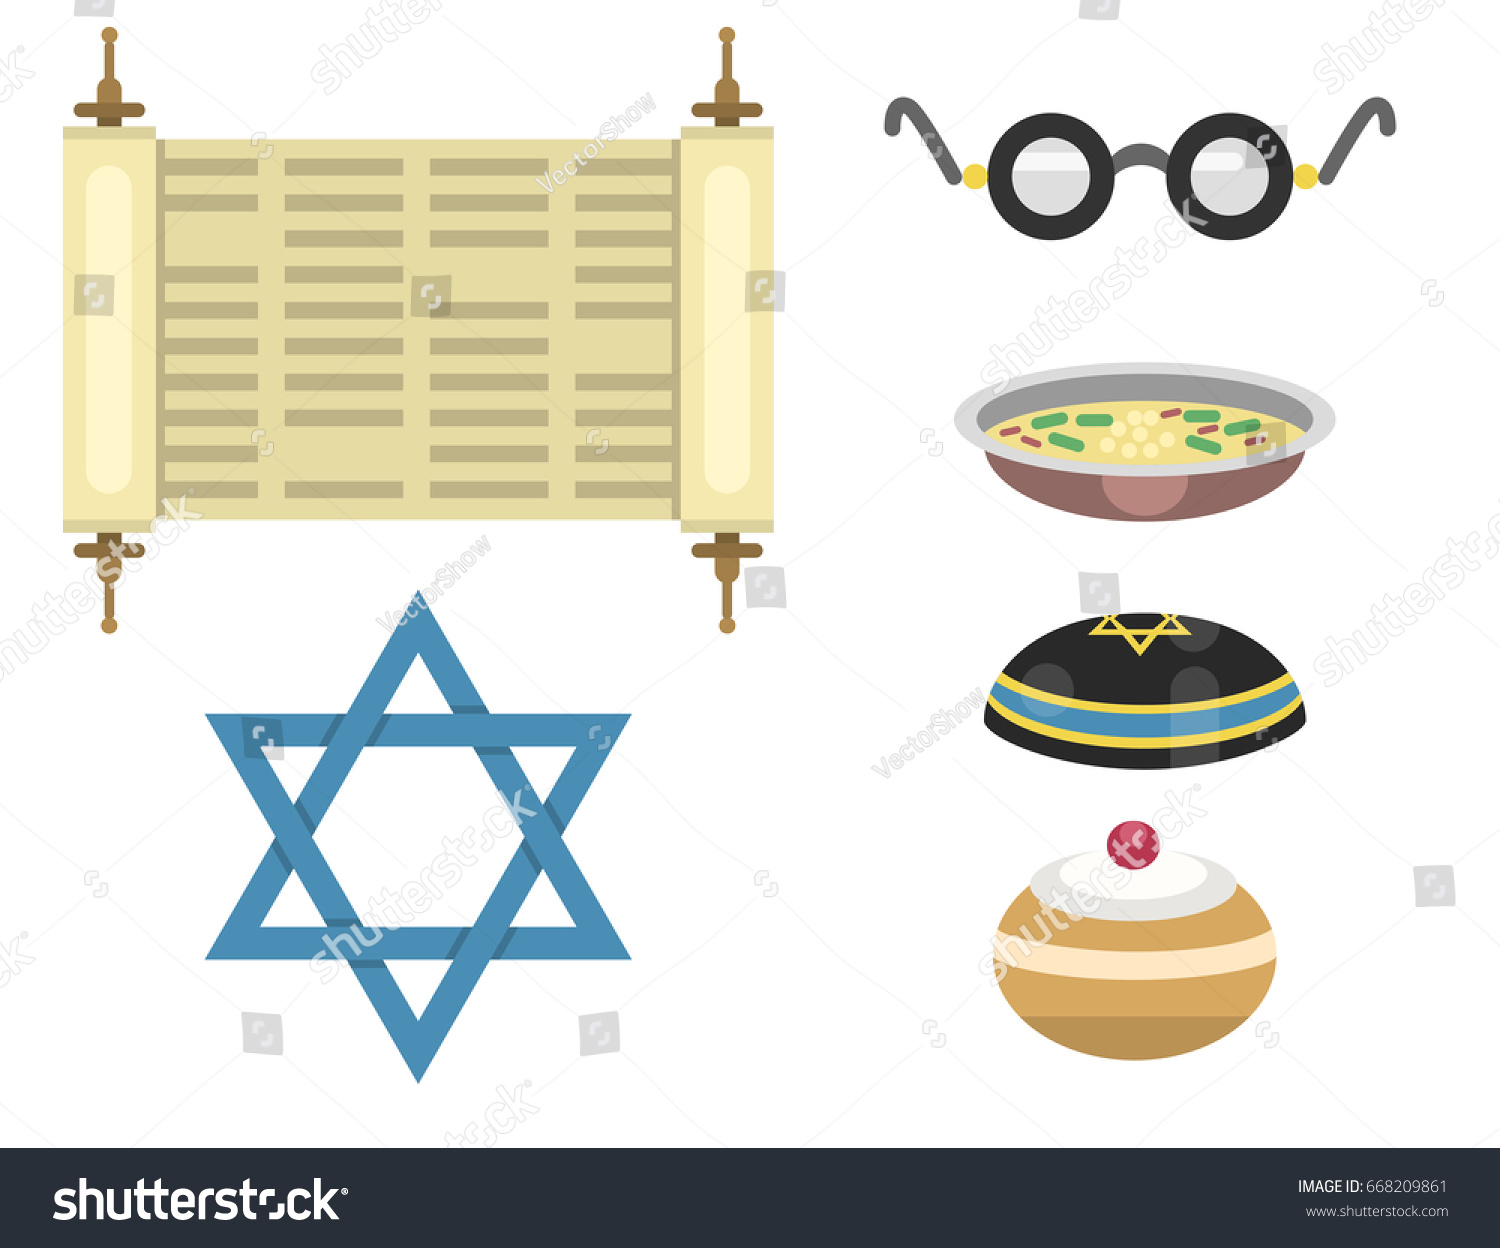 Judaism church traditional symbols isolated hanukkah stock vector judaism church traditional symbols isolated hanukkah religious synagogue passover hebrew jew vector illustration biocorpaavc Gallery